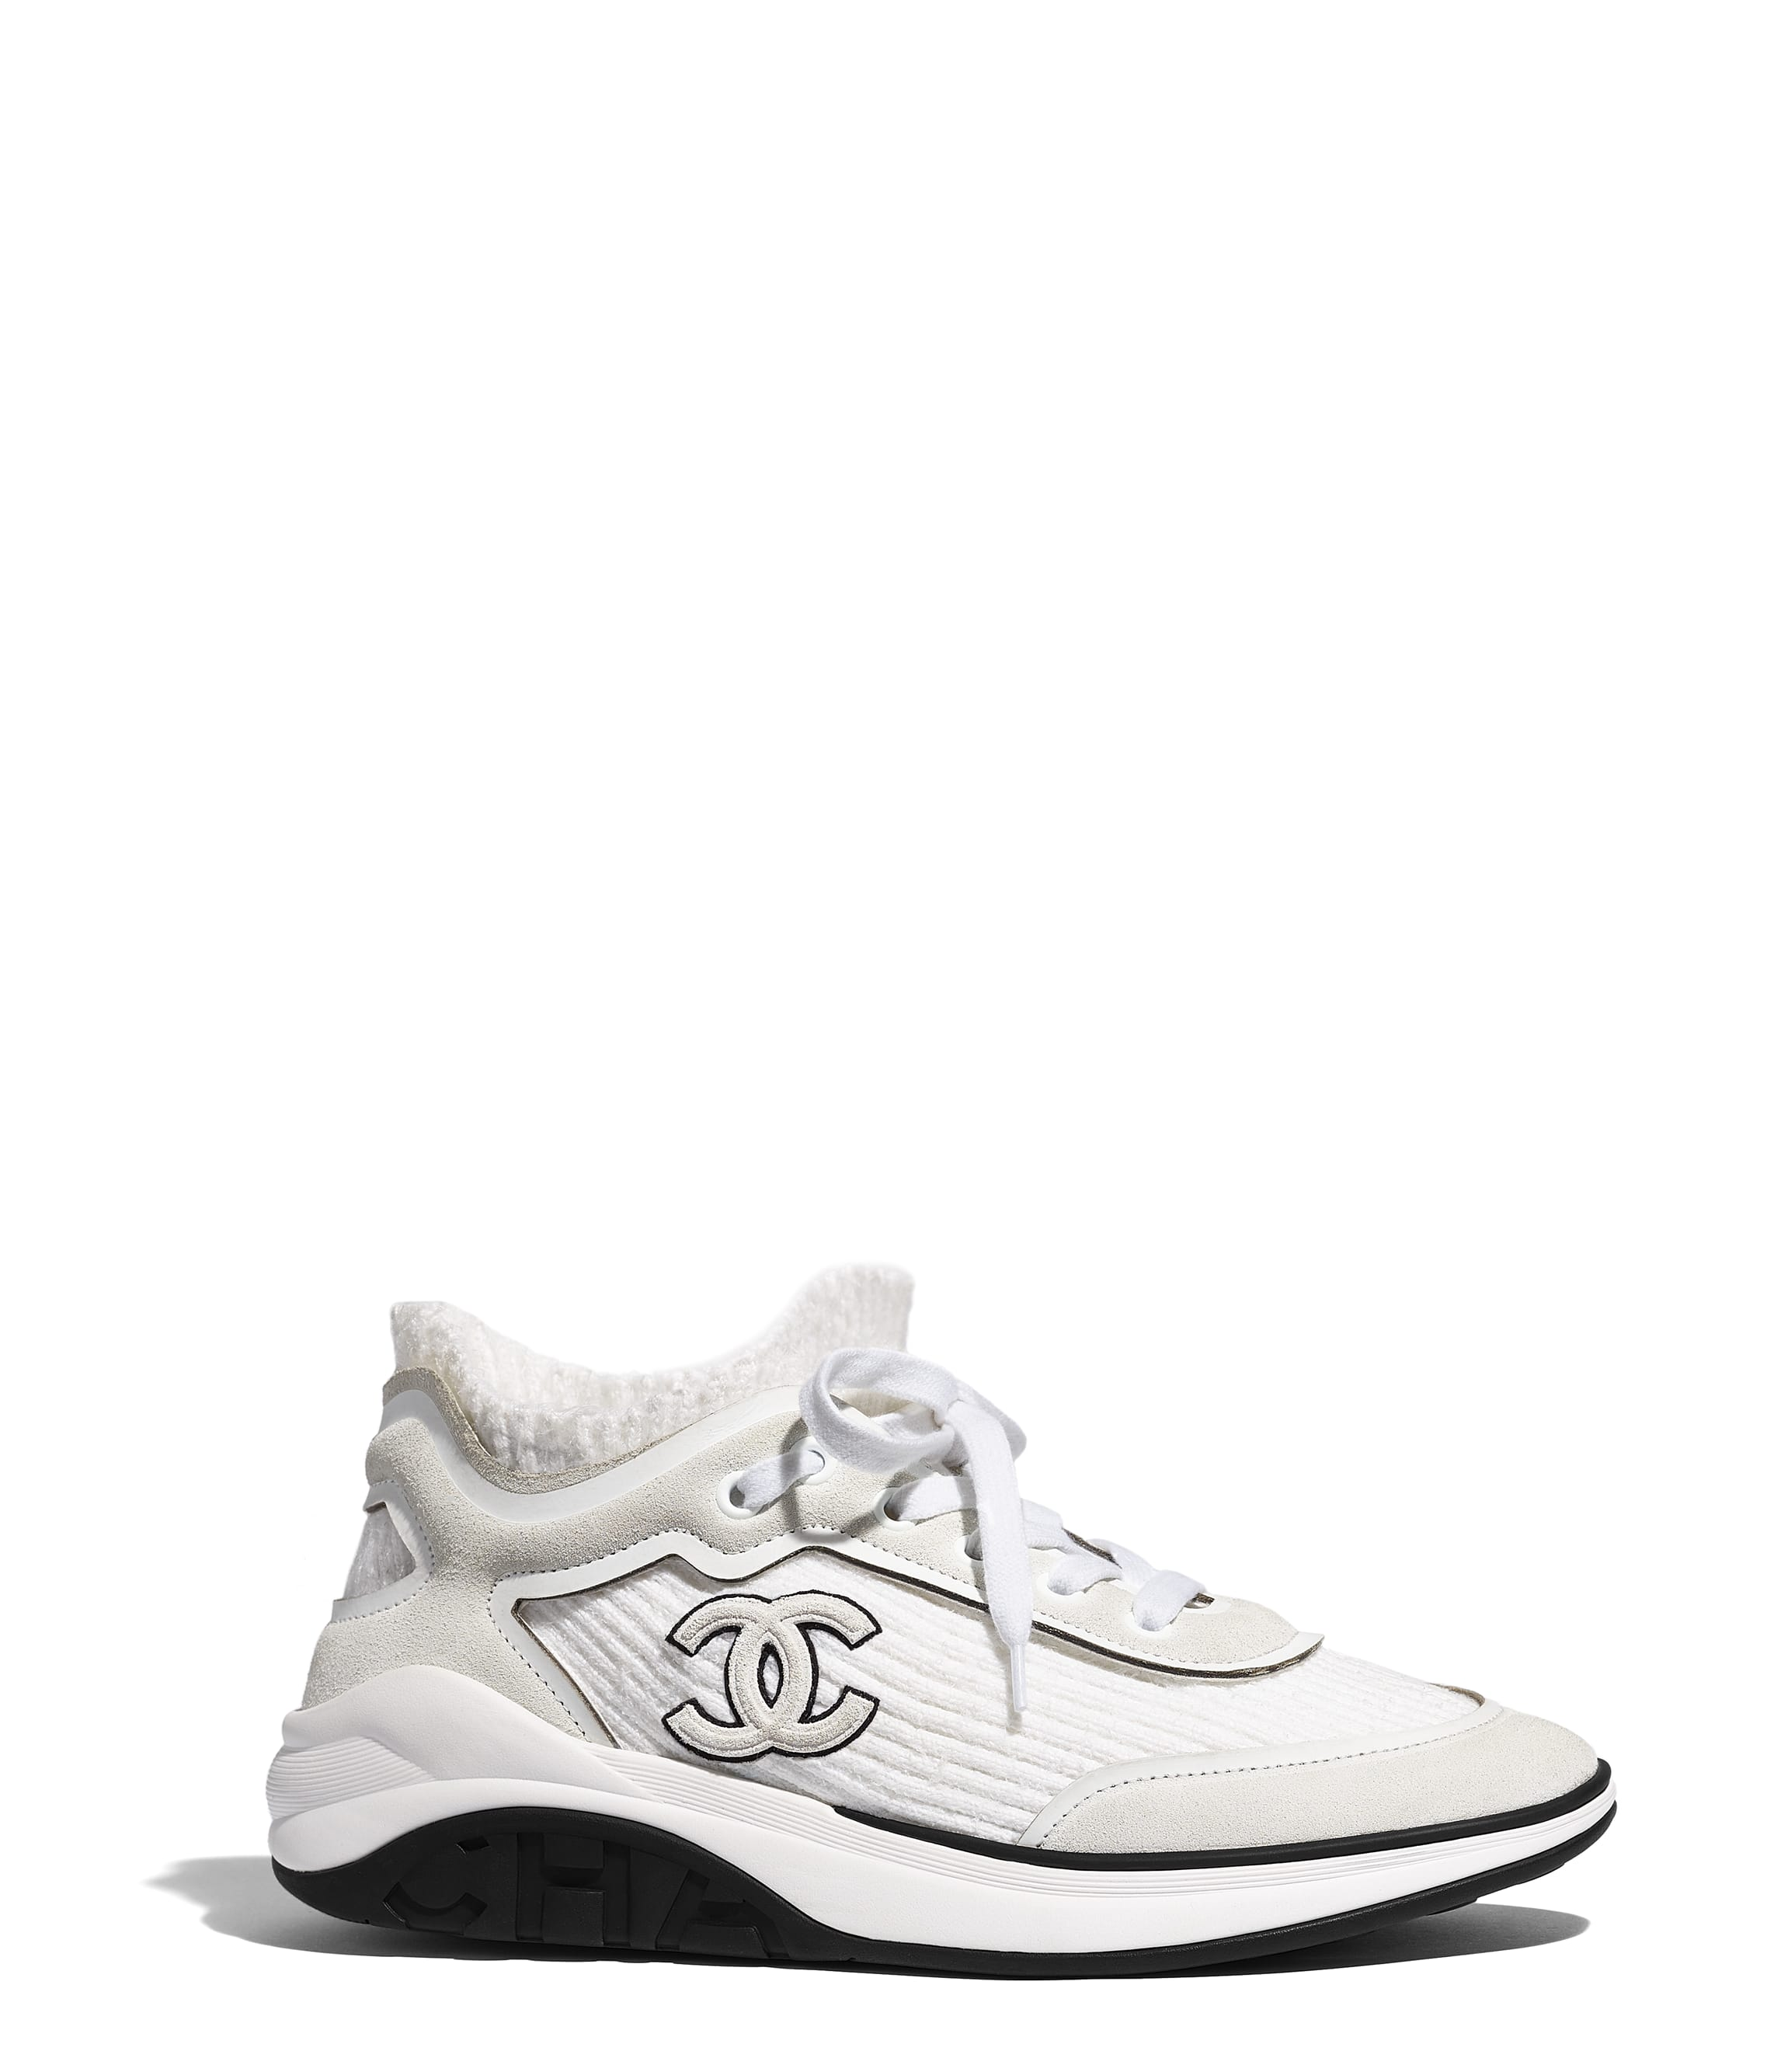 9b869a67c7cd Baskets - Chaussures & Souliers - CHANEL